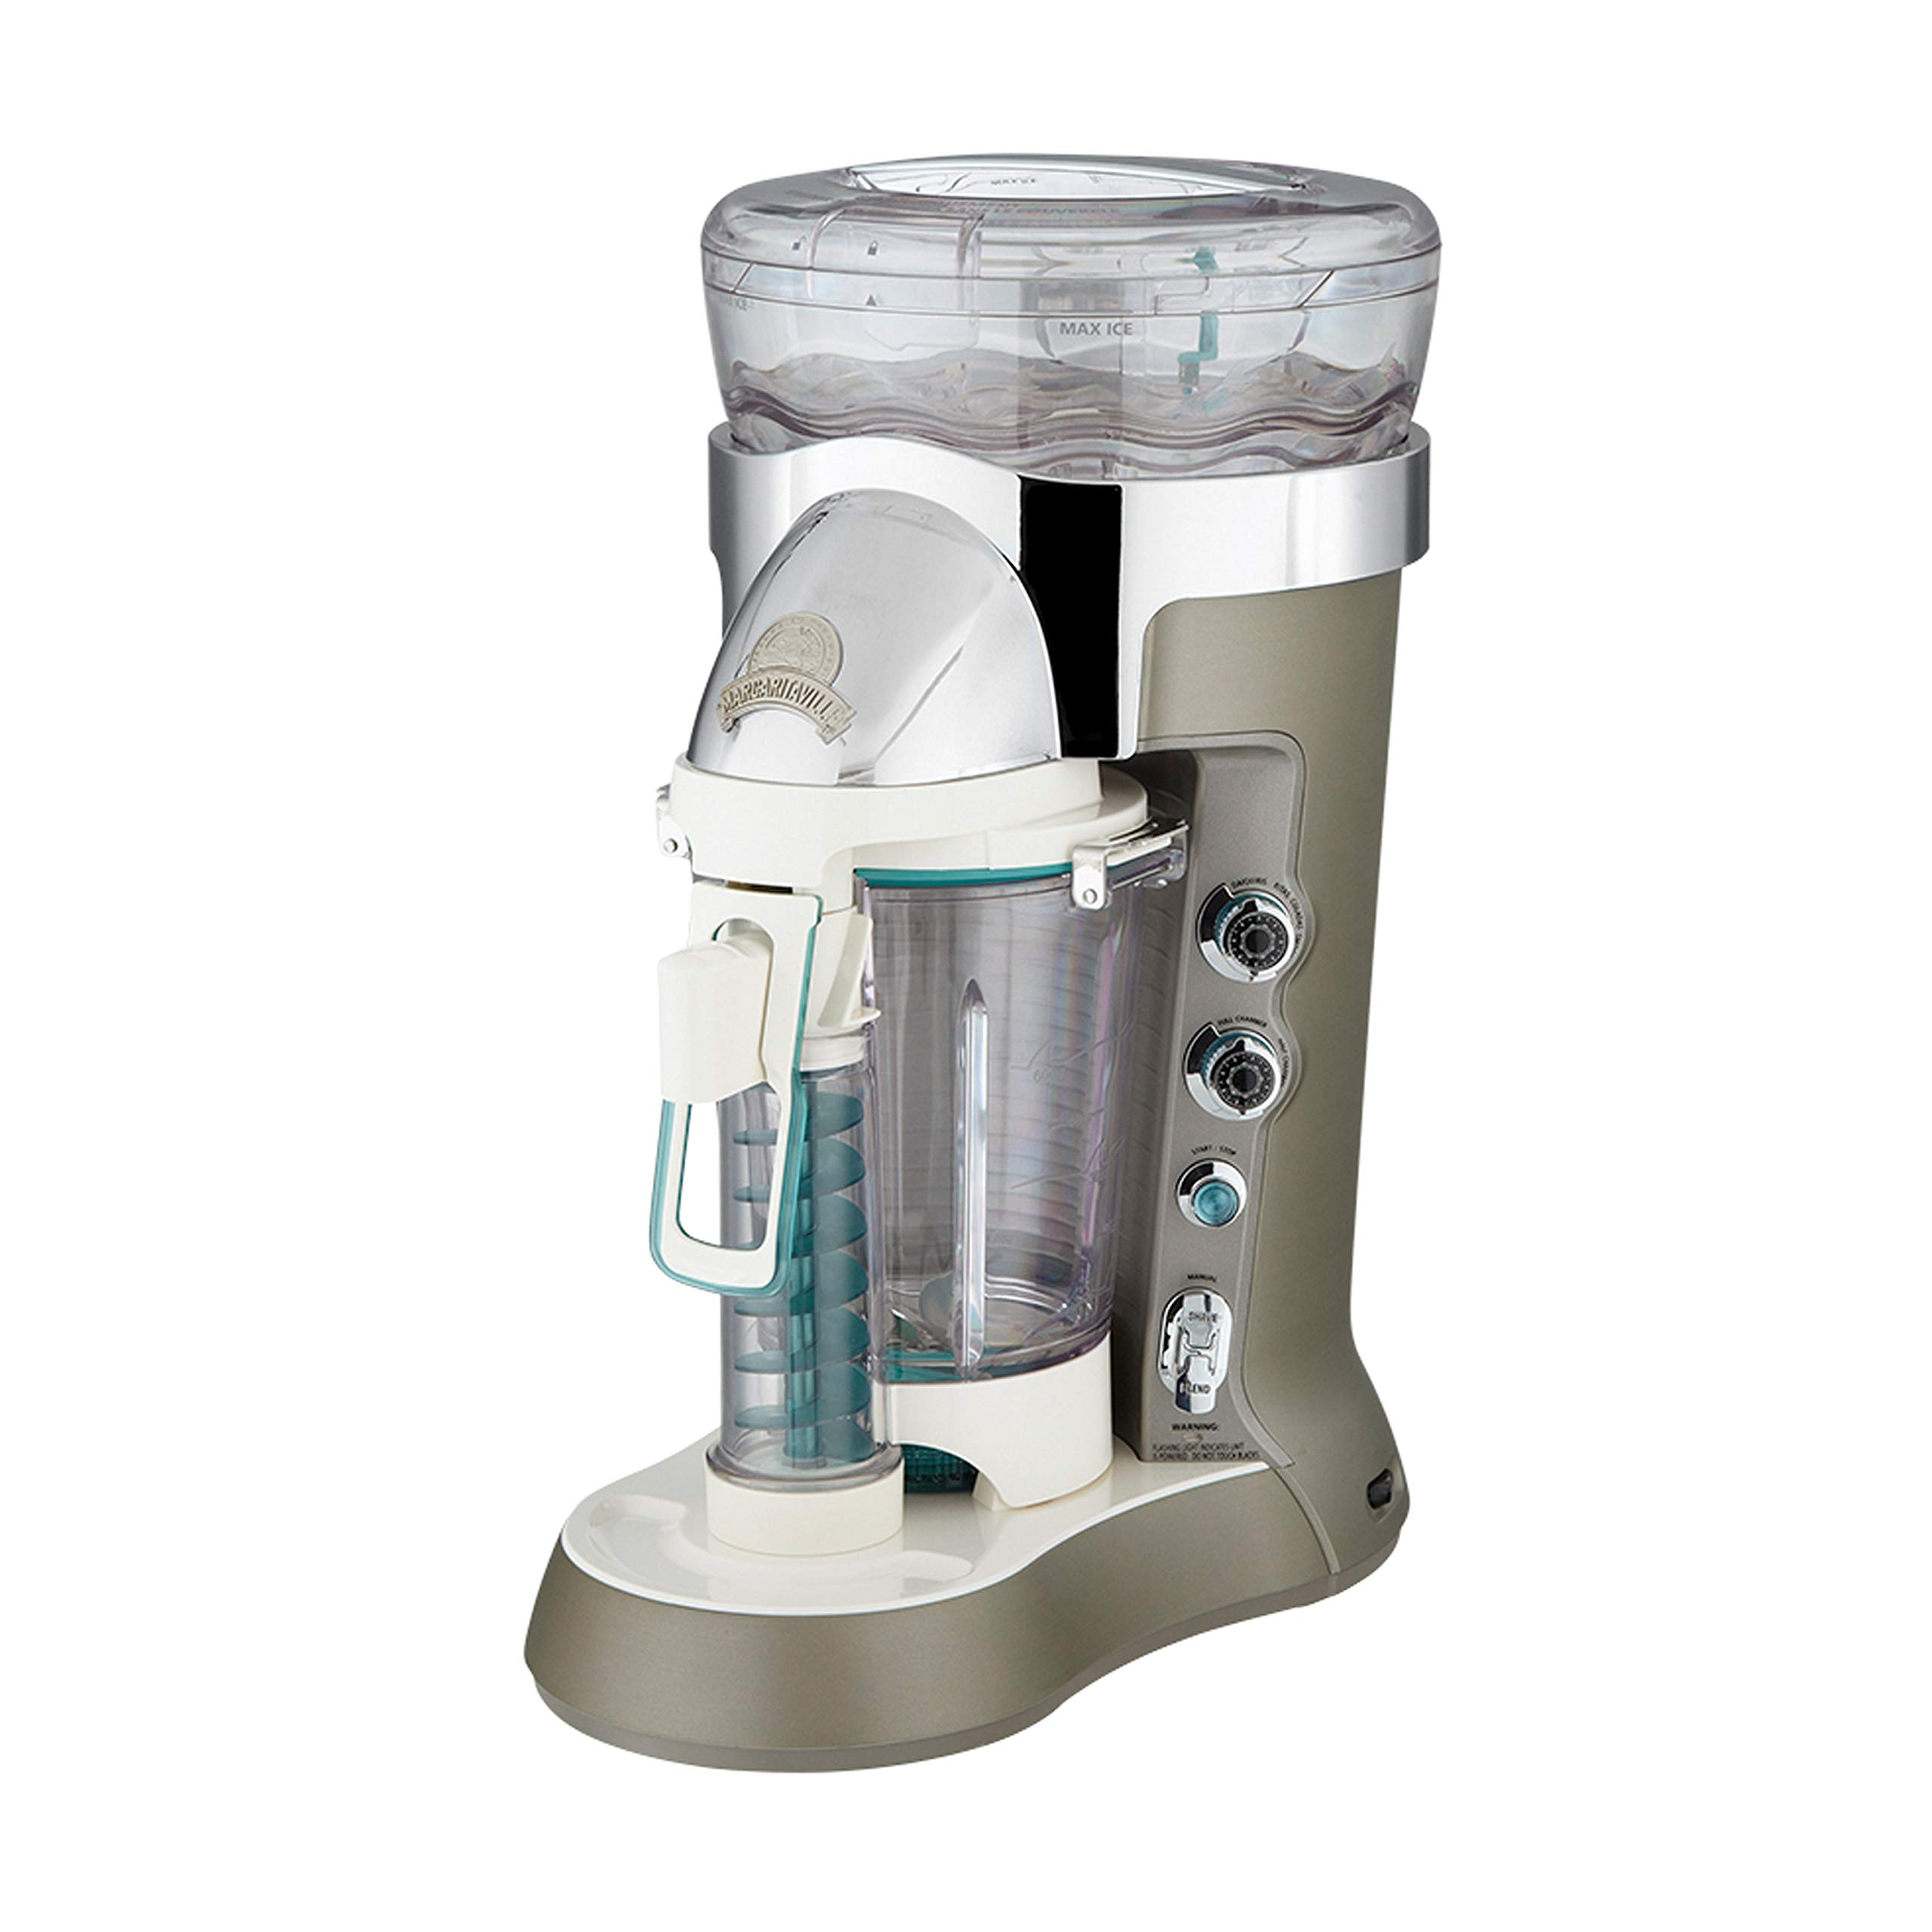 Margaritaville Bali Frozen Concoction Maker with Self-Dispensing Lever and Auto Remix Channel, DM3500 by Margaritaville